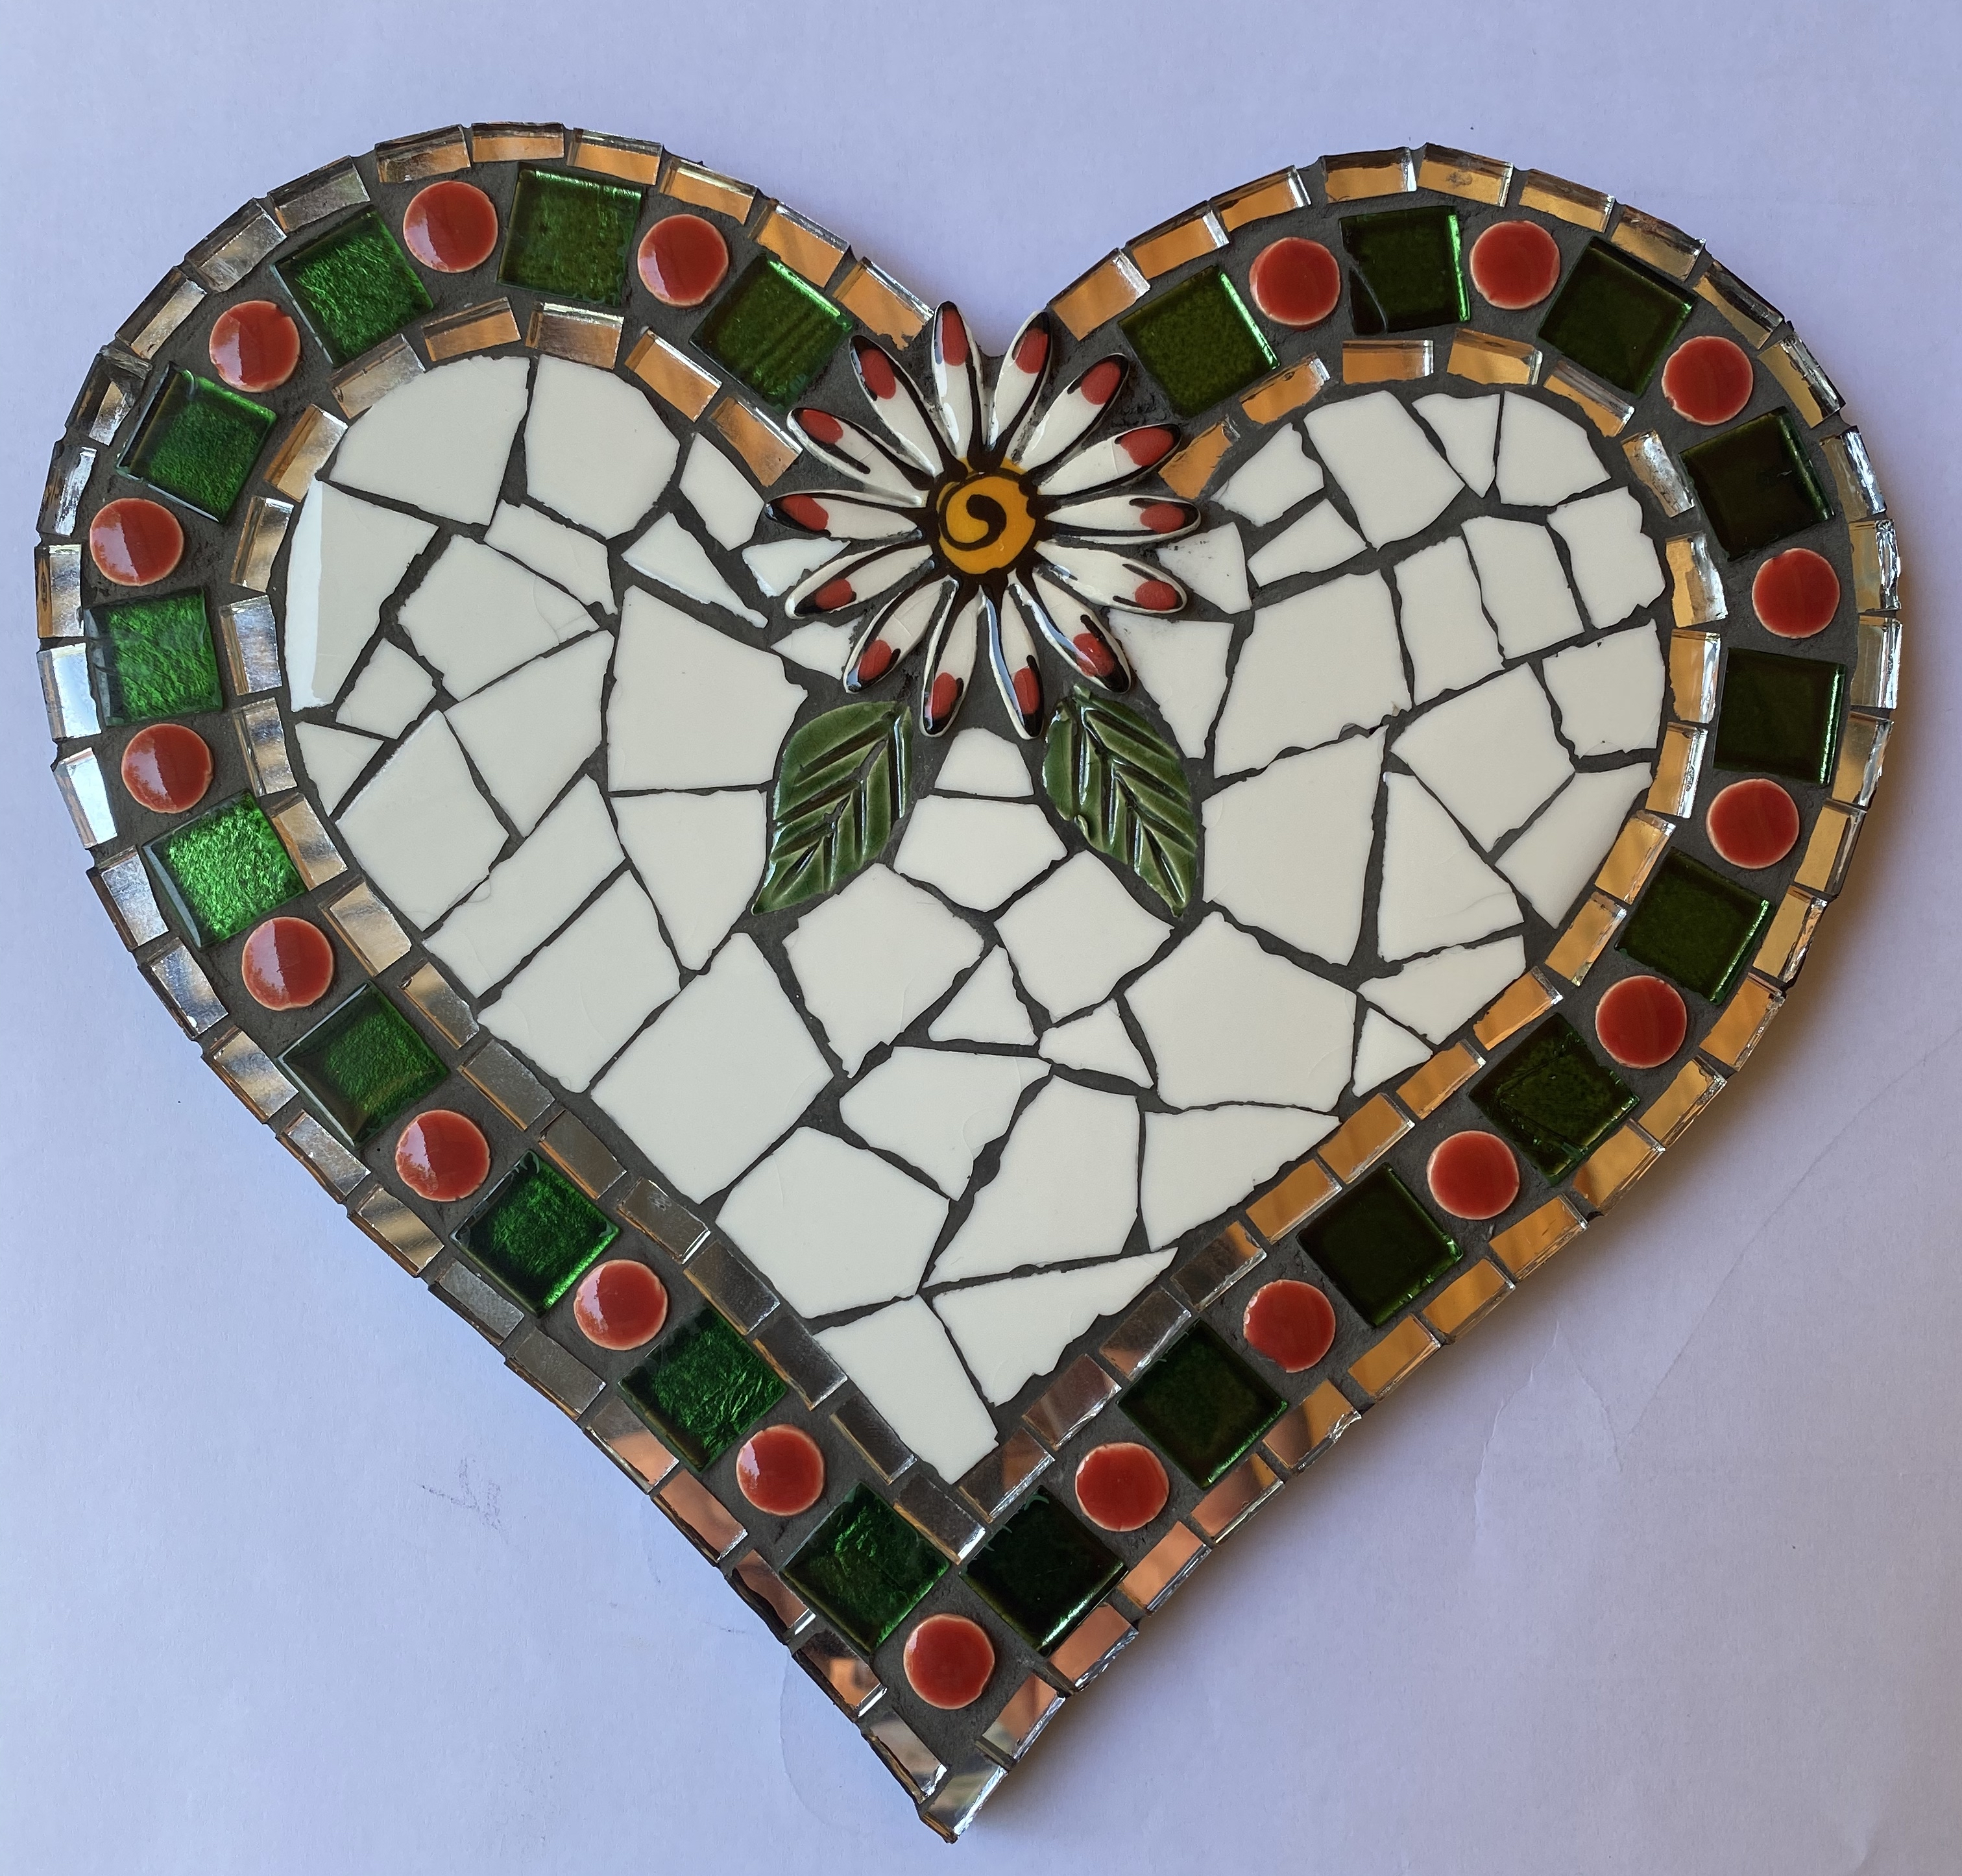 heart-kit-with-flower-and-green-tiles-kit113